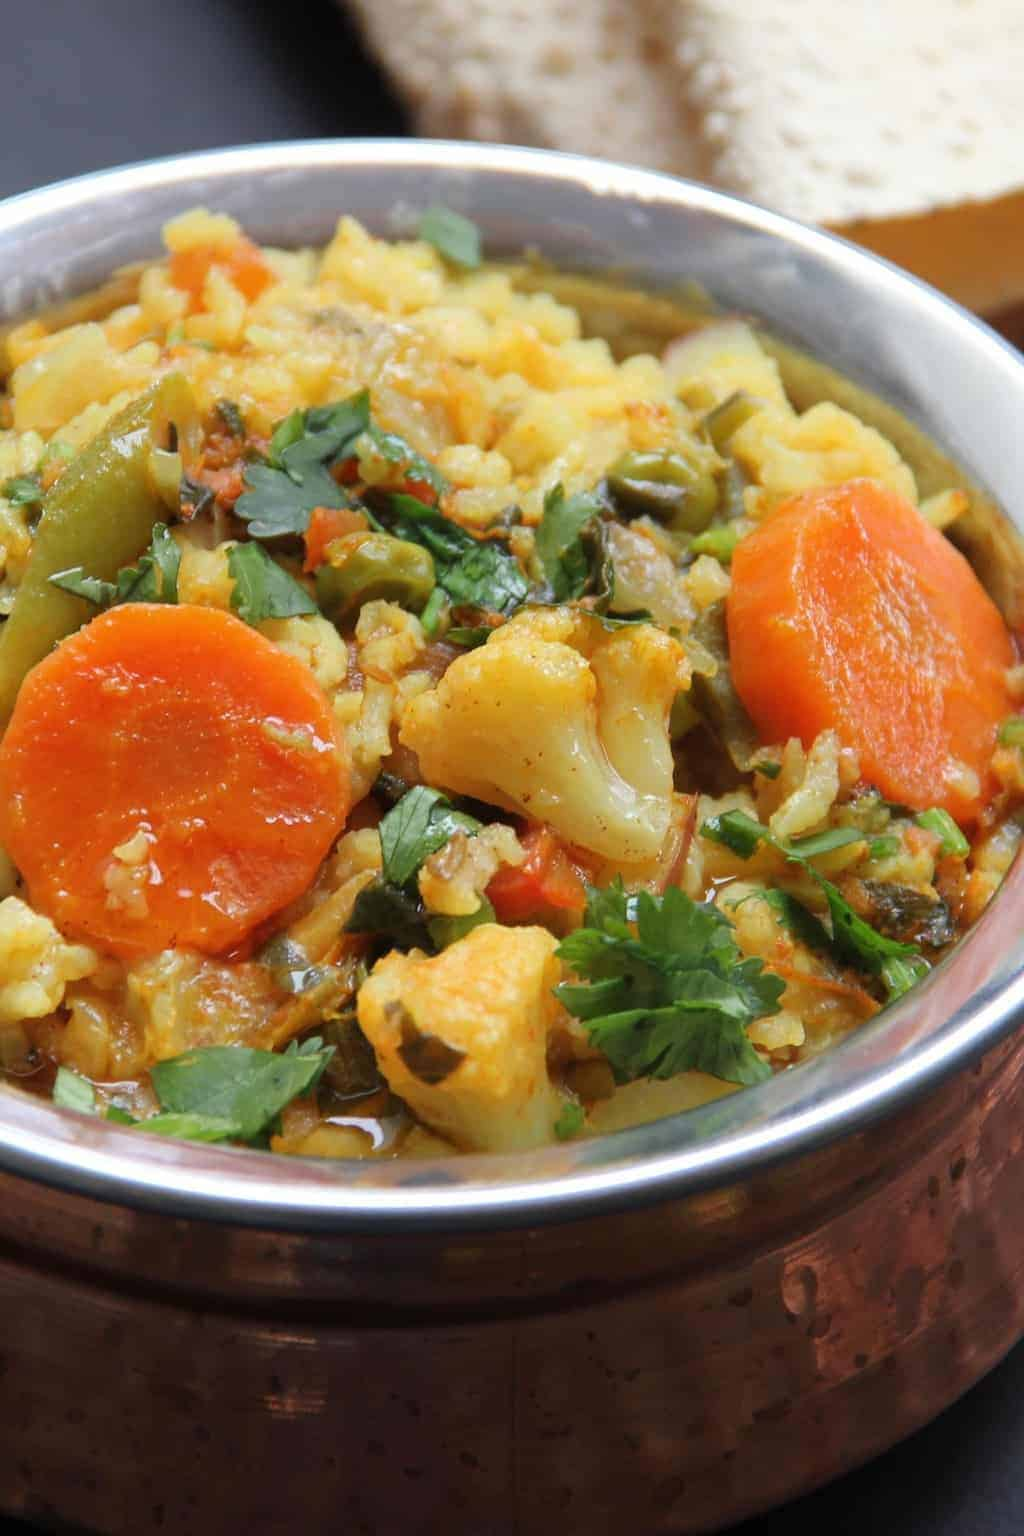 Mixed Lentils & Vegetables Khichdi - A vegetarian, one-pot, gluten free dish with lentils, rice and vegetables. #minsitryofcurry #instantpot